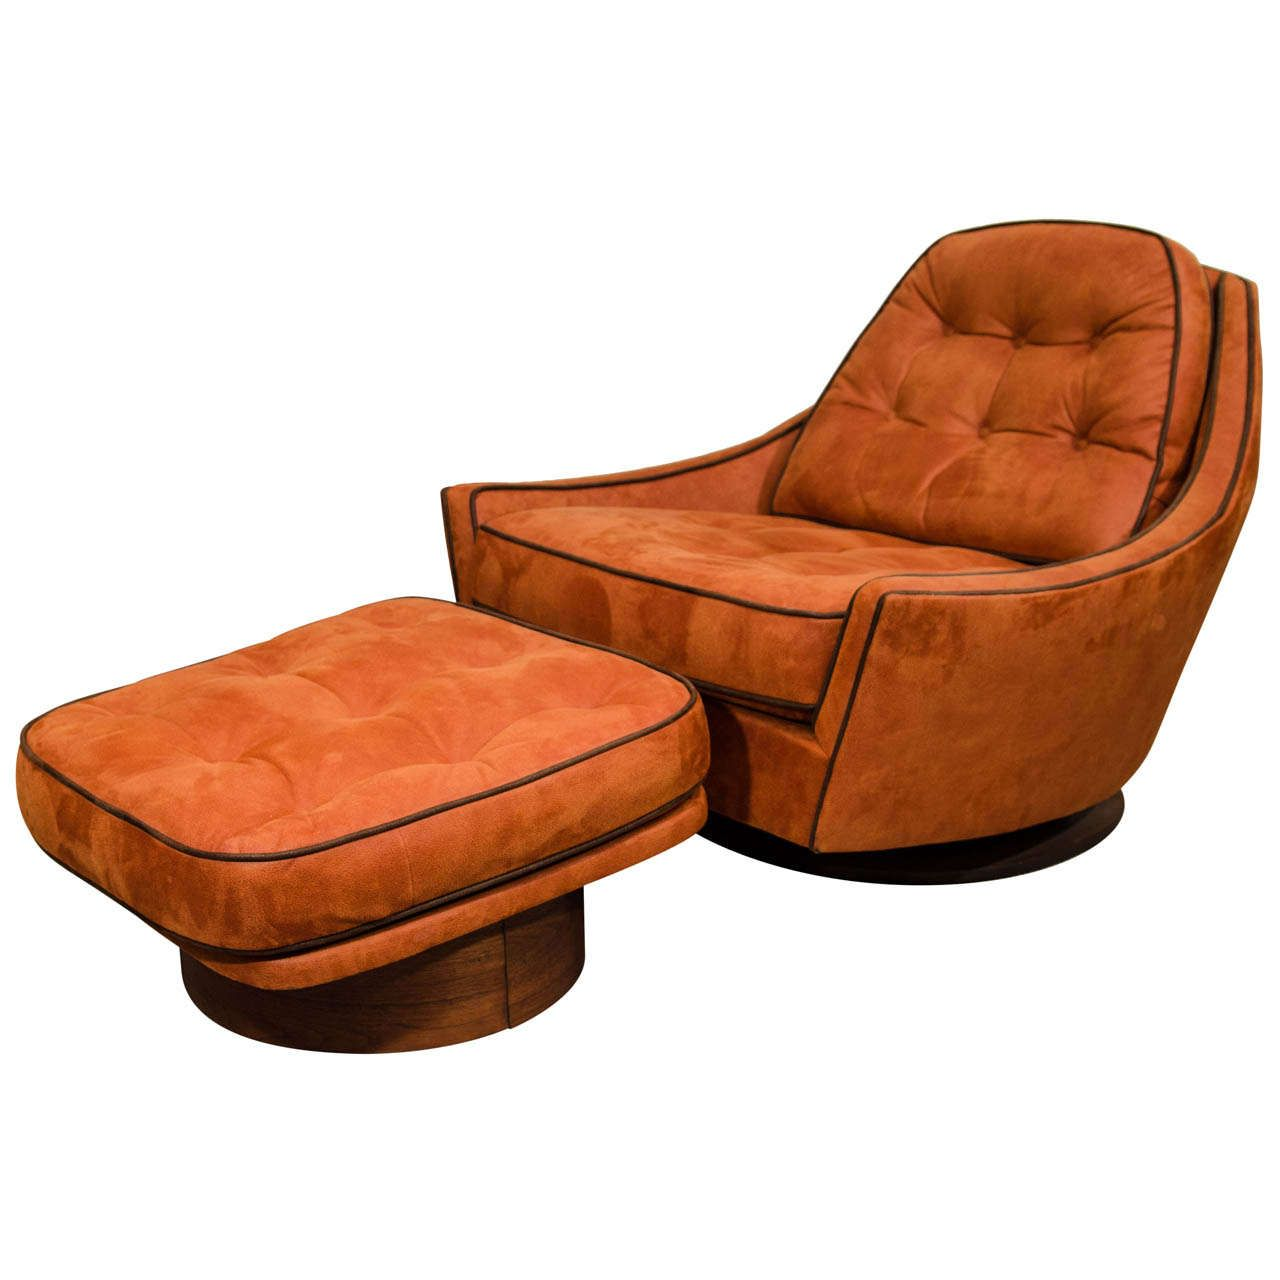 Amazing Vintage Swivel Club Chair And Ottoman Fn Apj Swivel Club Squirreltailoven Fun Painted Chair Ideas Images Squirreltailovenorg